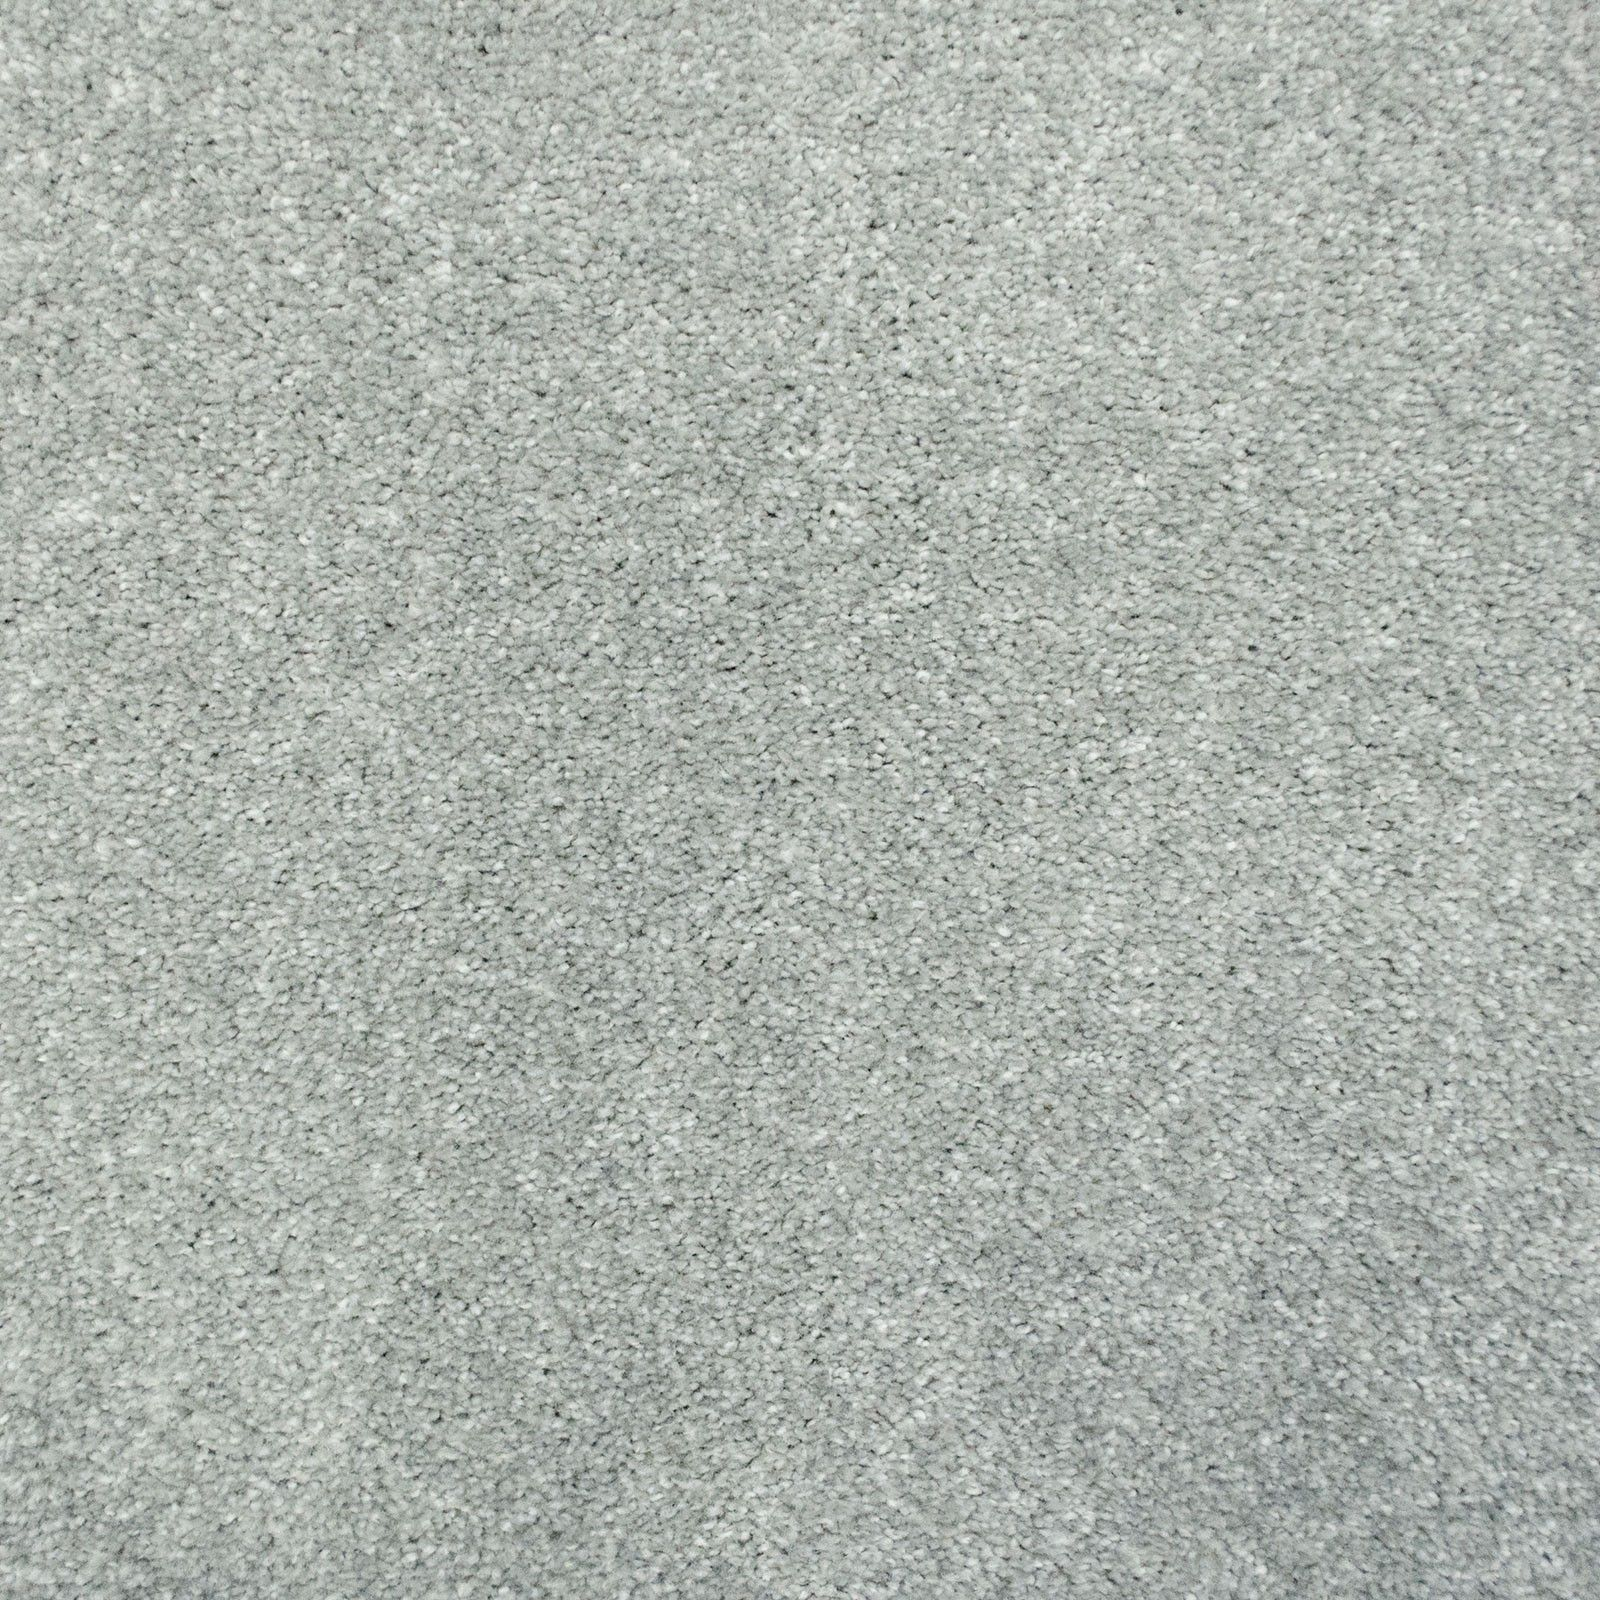 Top Saxony Silver Shadow - 4304 Carpet